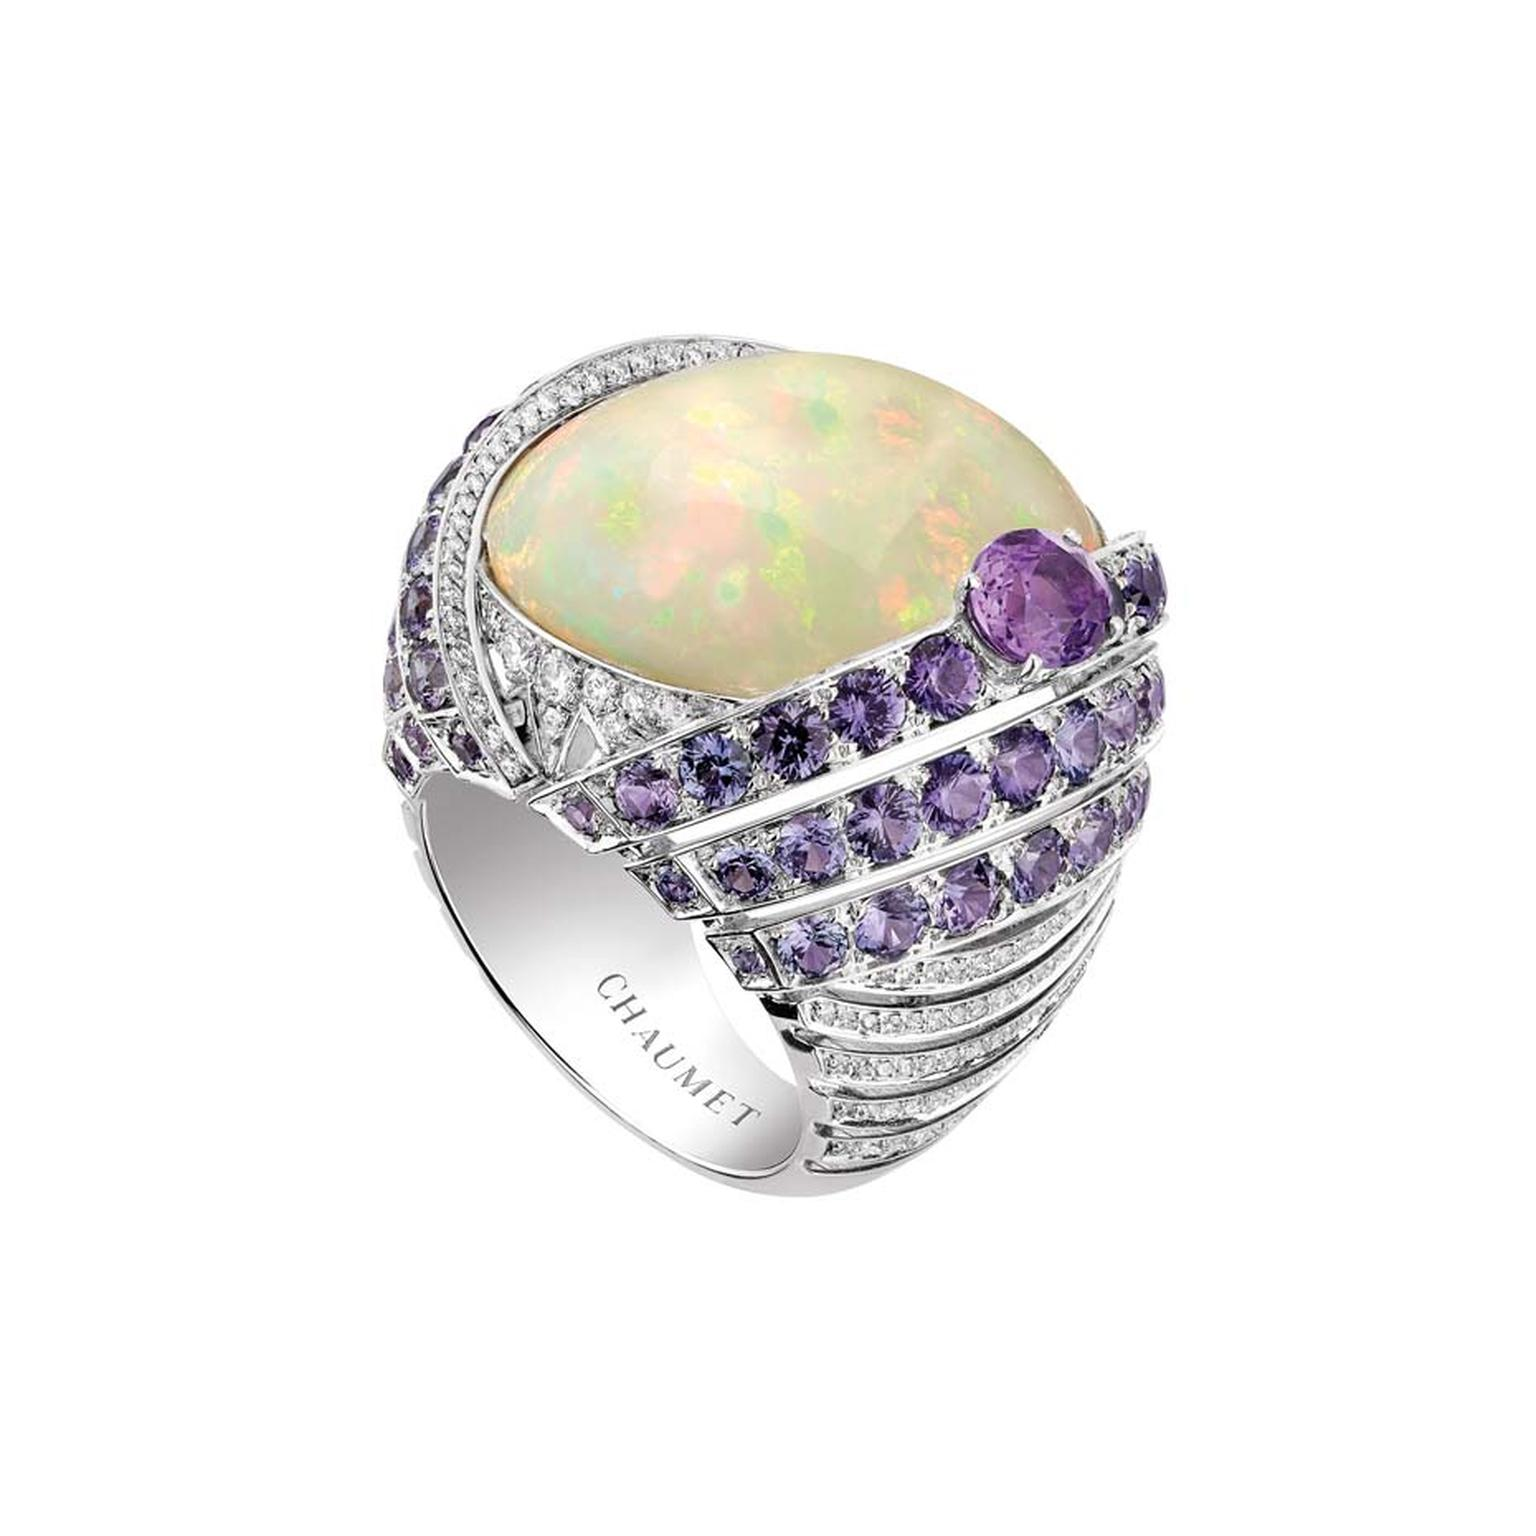 Chaumet Lumieres d'Eau high jewellery ring in white gold, set with a 18.58ct cabochon-cut white opal from Ethiopia, an oval-cut violet sapphire, round violet sapphires and brilliant-cut diamonds.